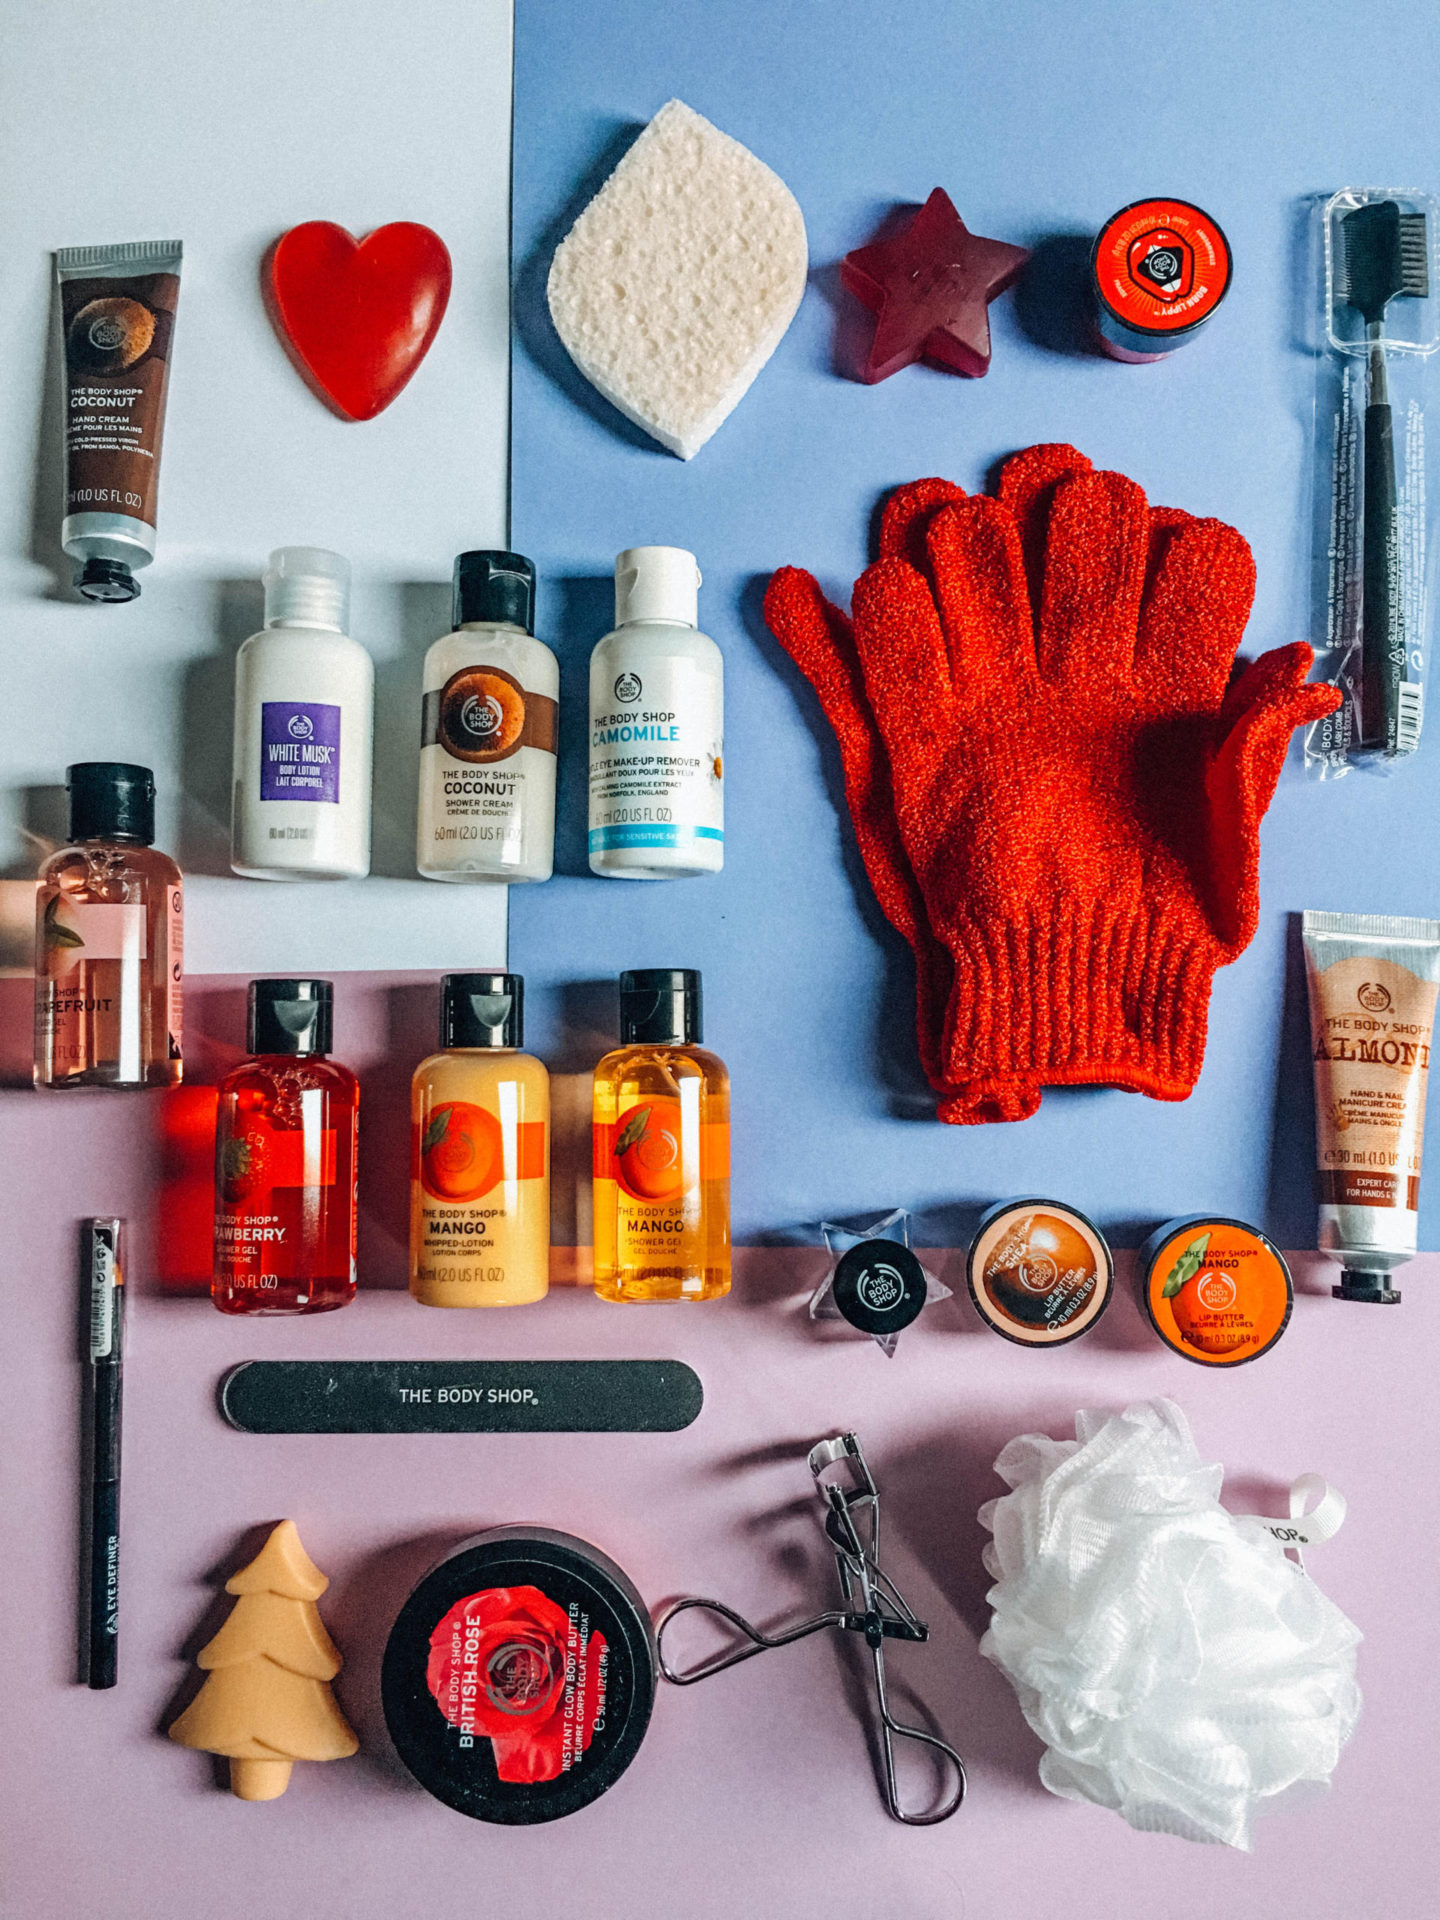 The countdown with this beauty advent calendar of The Body Shop can start